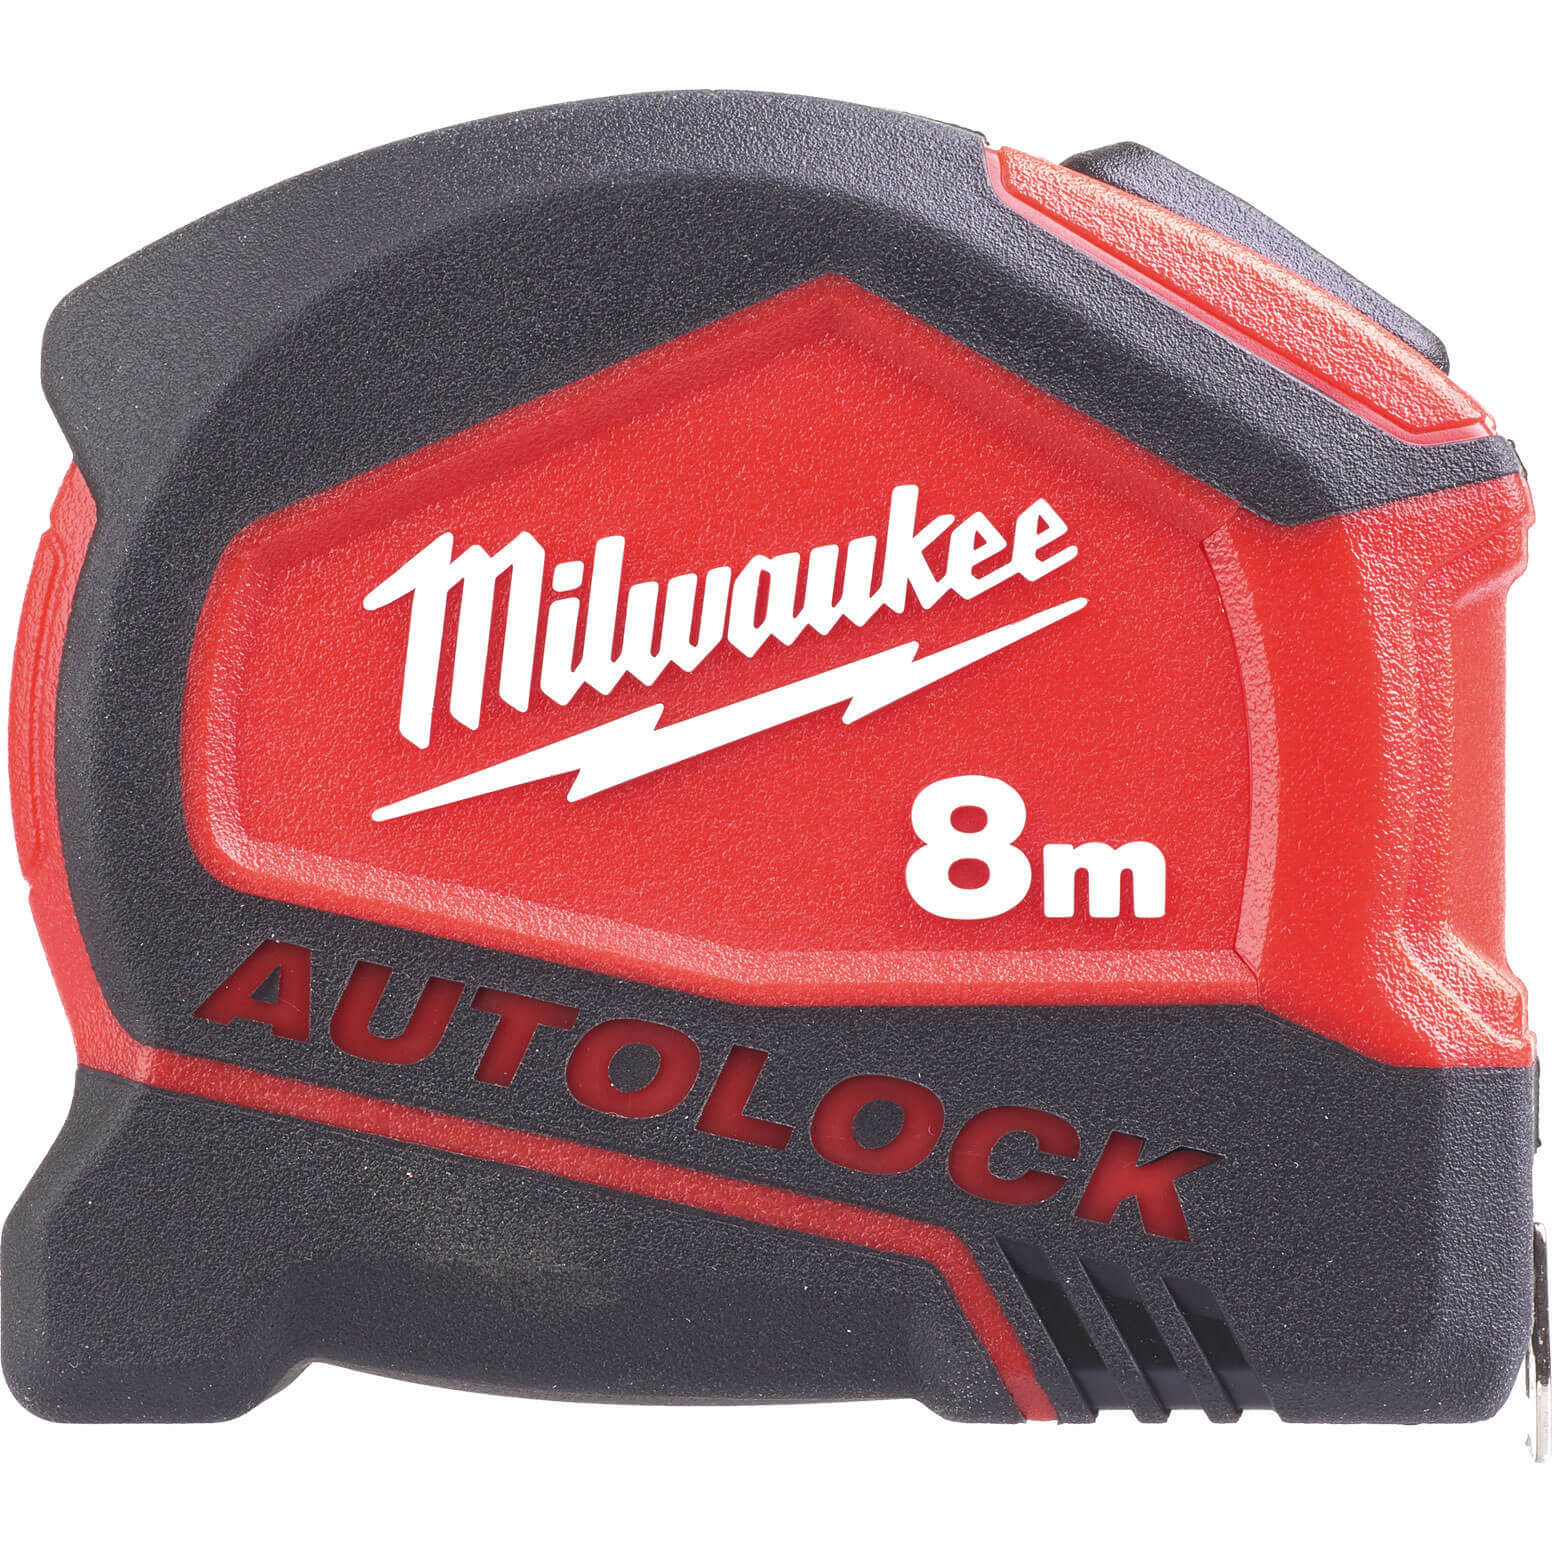 Image of Milwaukee Autolock Tape Measure Imperial & Metric 26ft / 8m 25mm